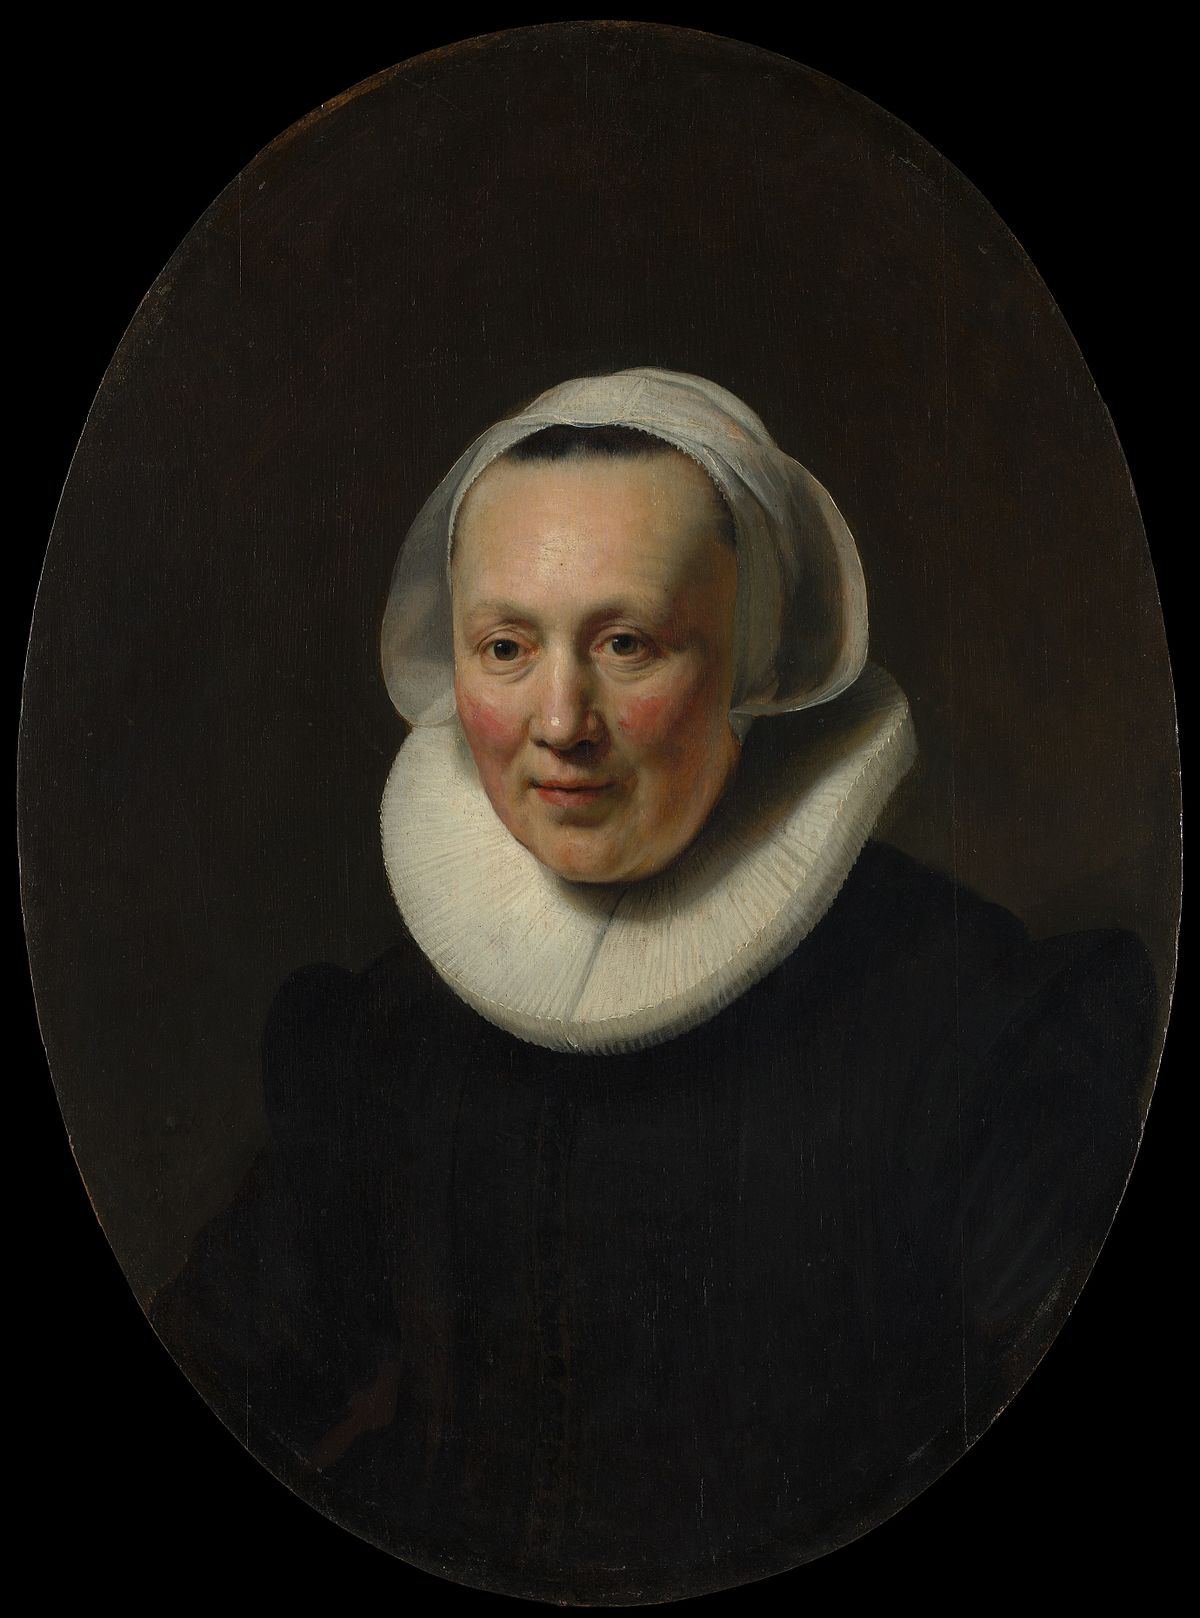 oval portrait of a woman rembrandt new york wikipedia